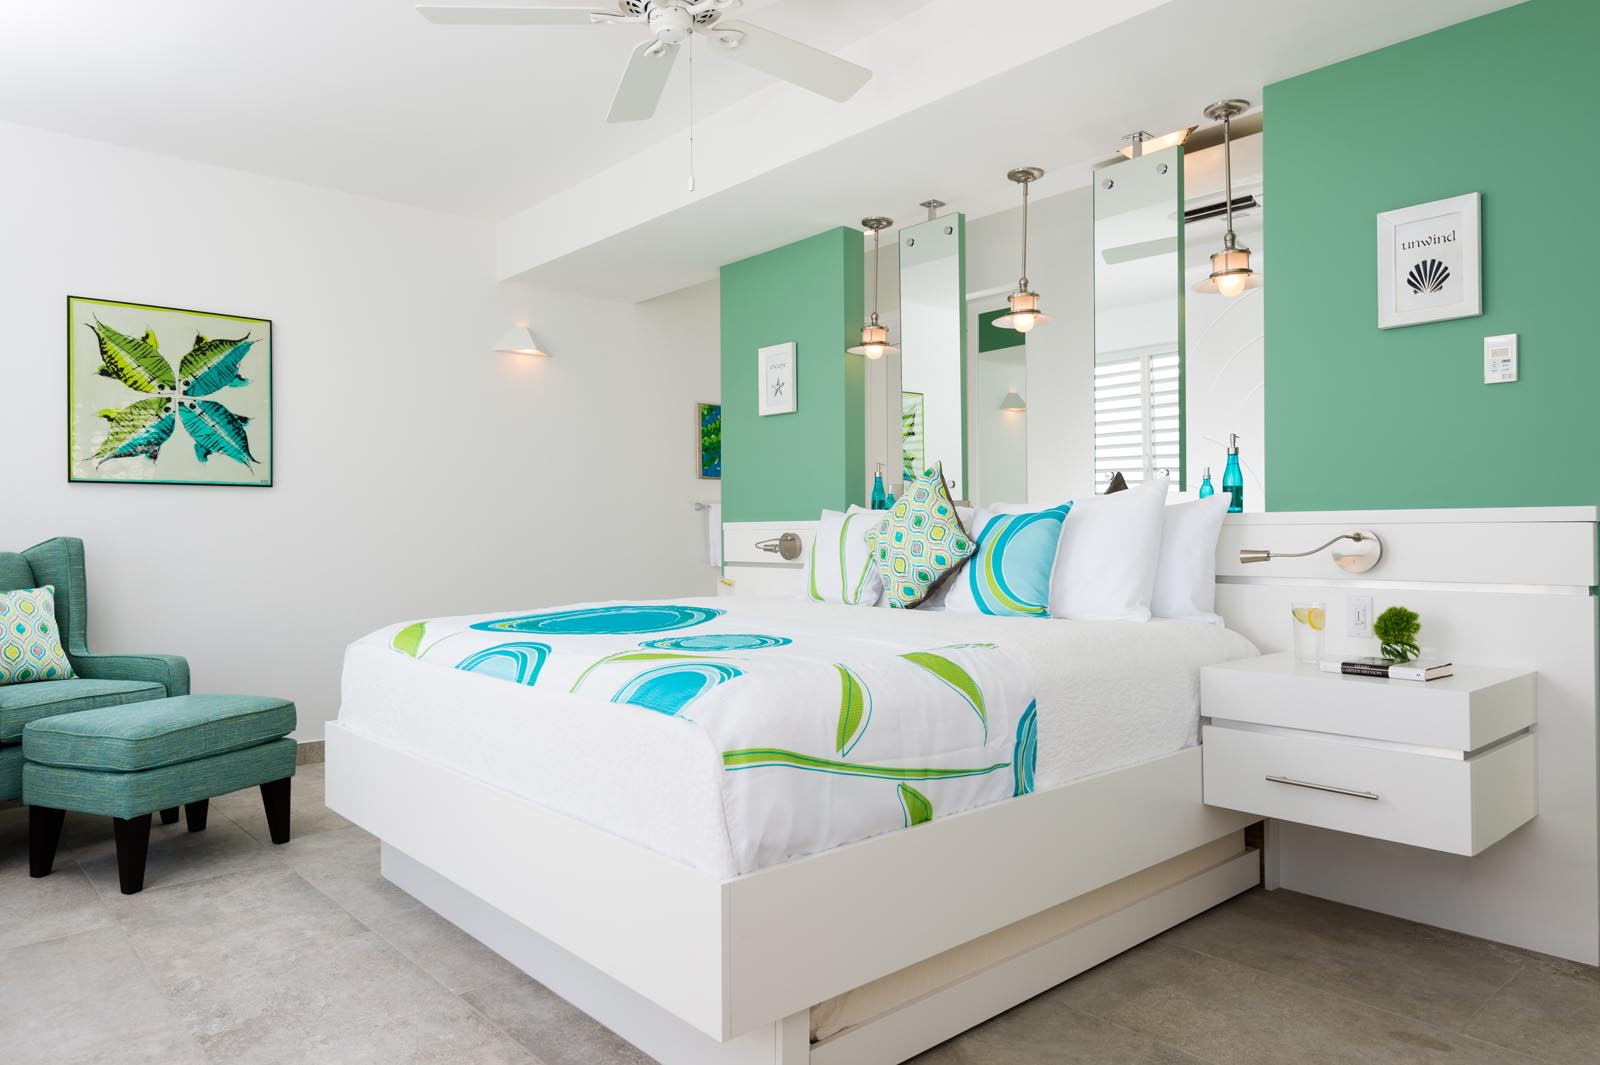 This Turks and Caicos luxury villa rental has 6 master bedroom suites featuring all king-size beds or optional twin beds.